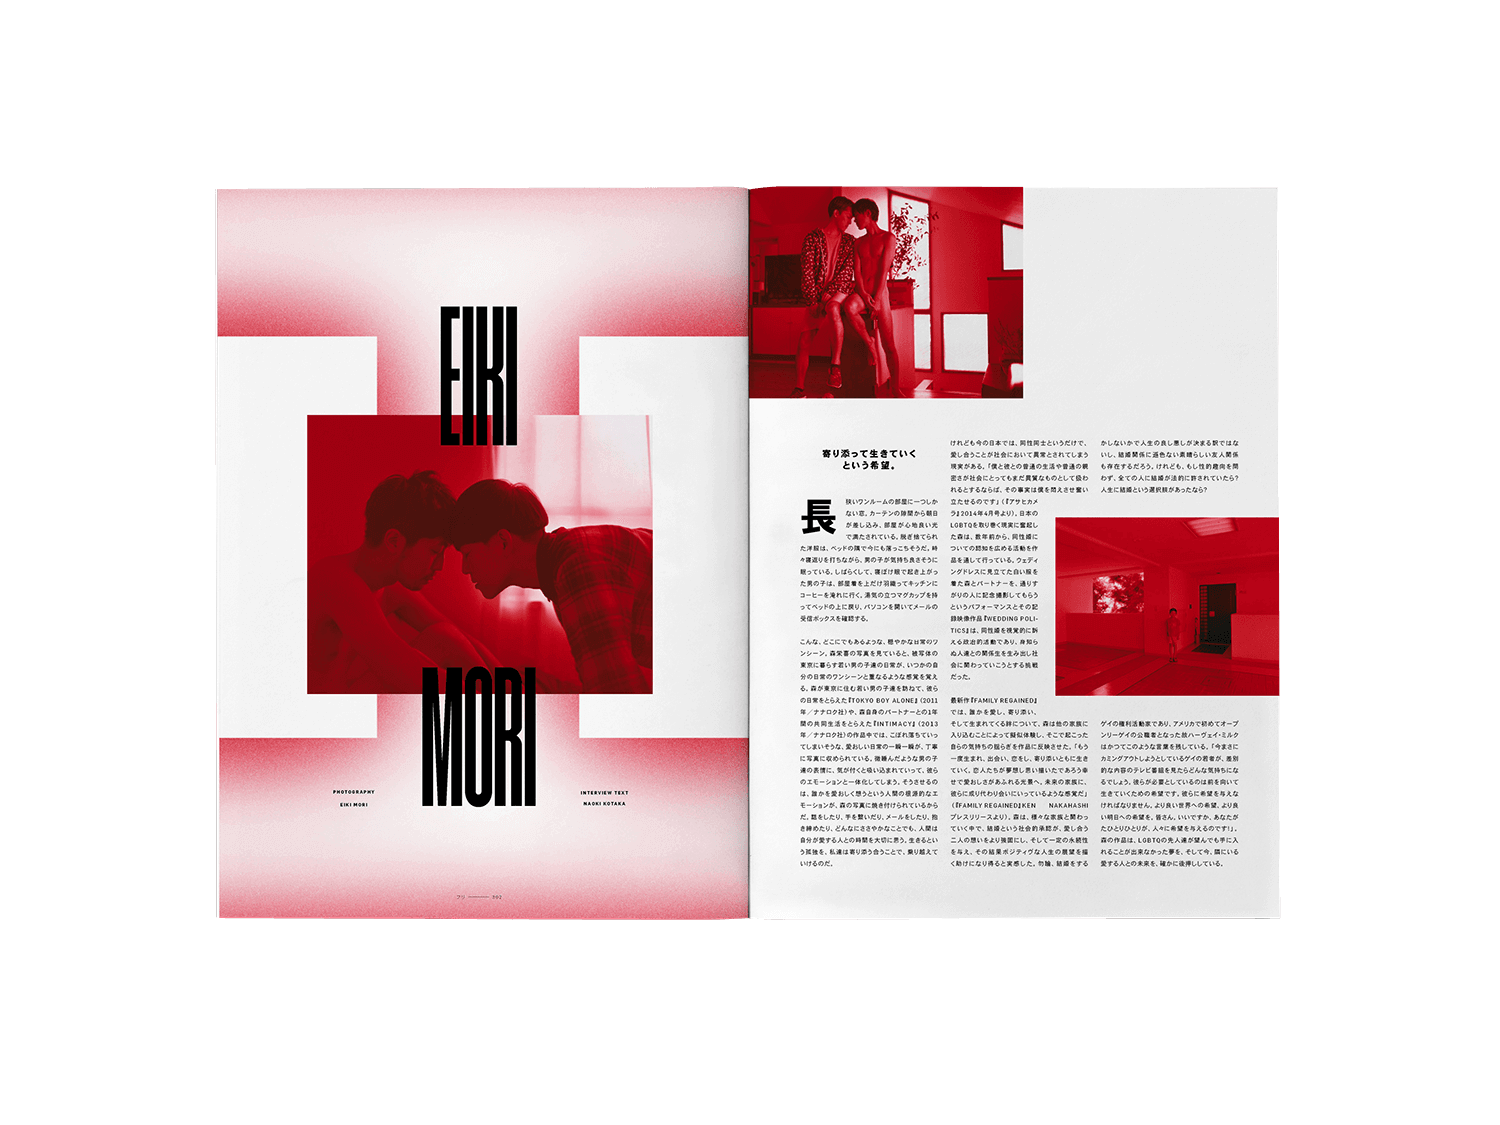 FREE-MAG_ISSUE-06_147-compressor